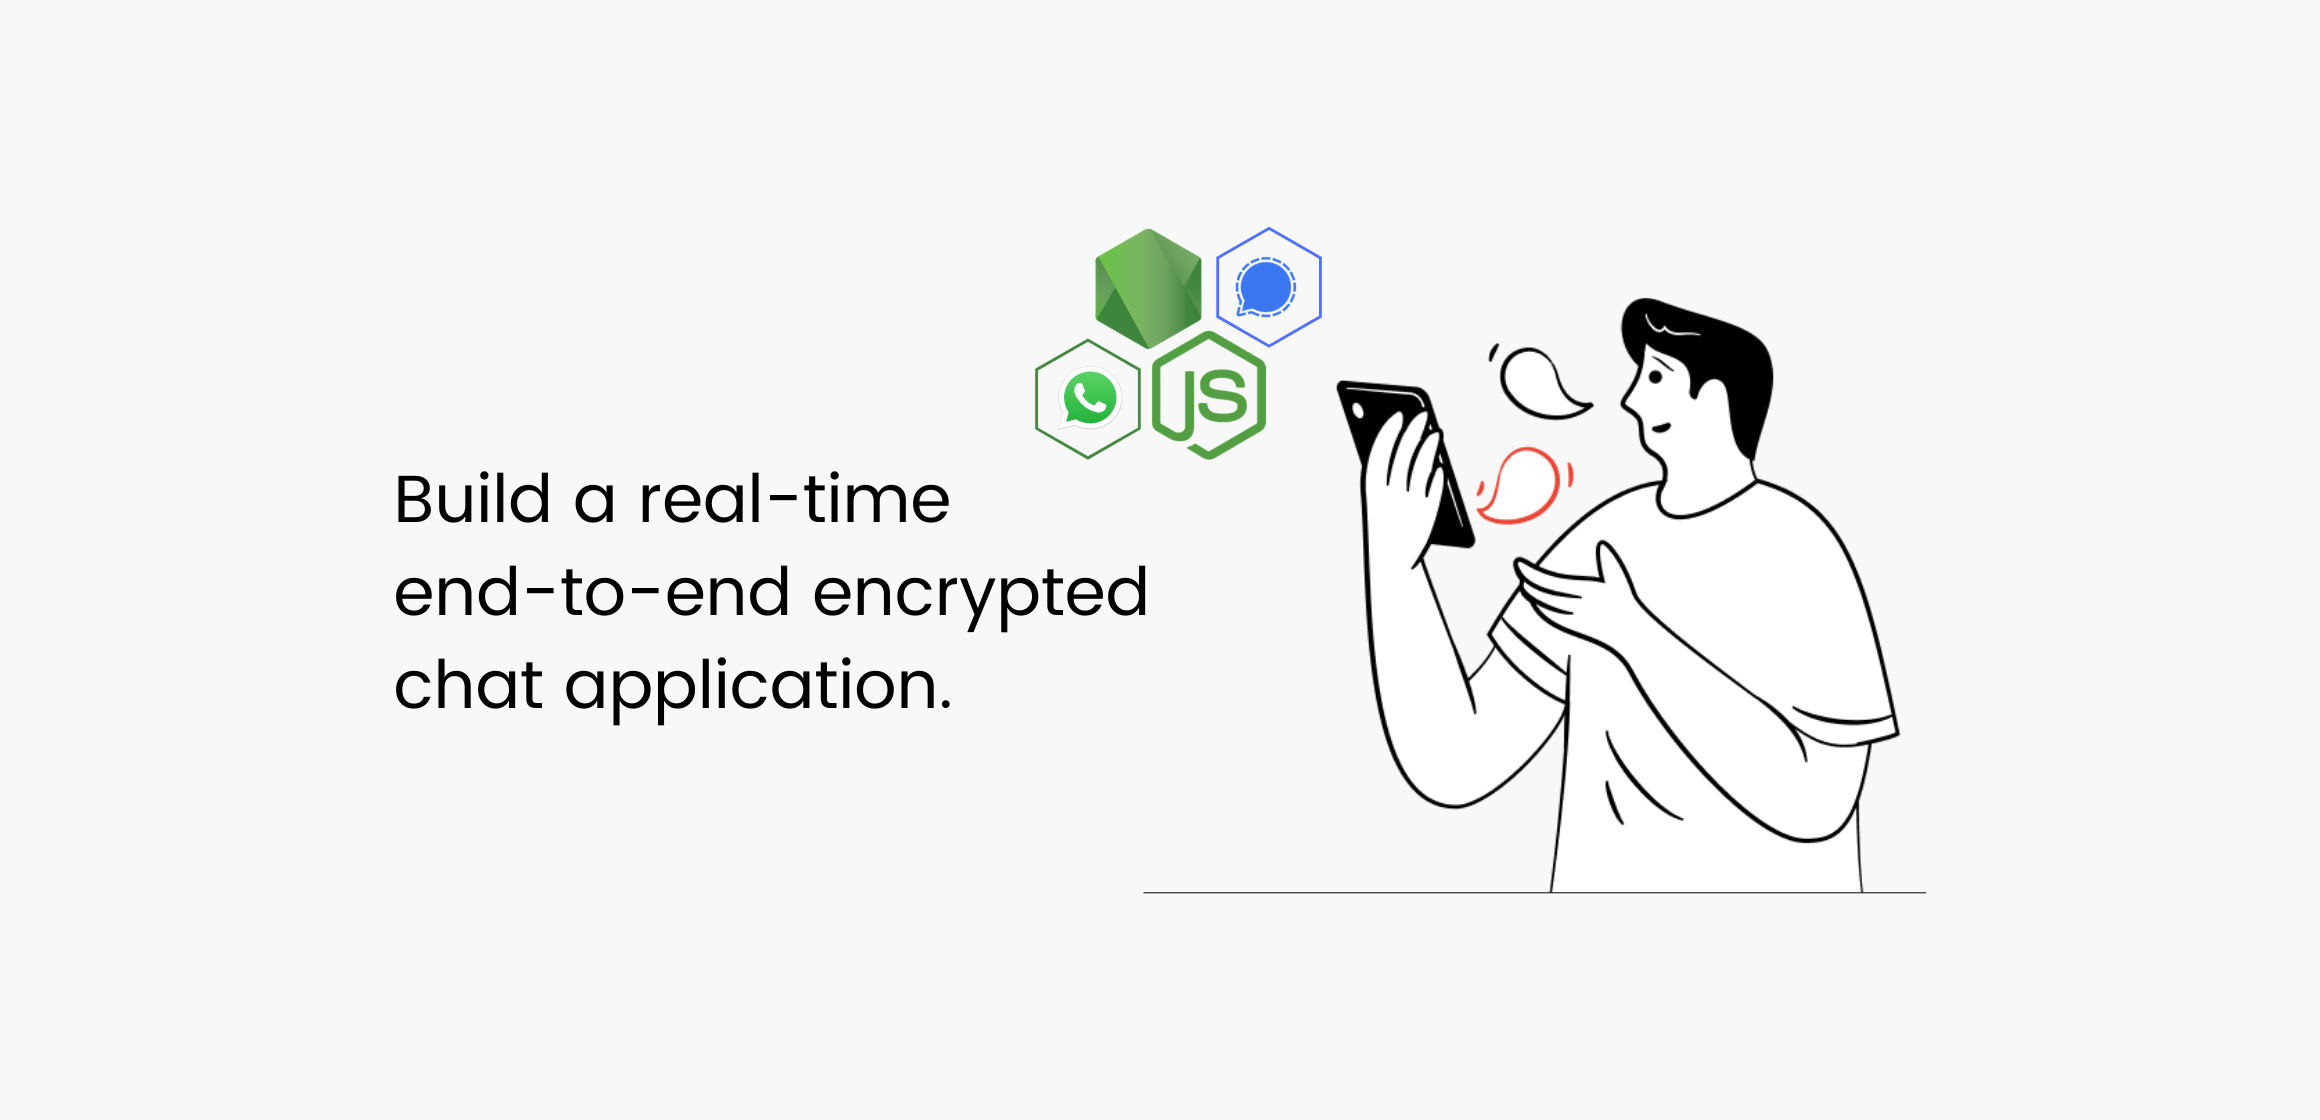 End-to-end encrypted chat application